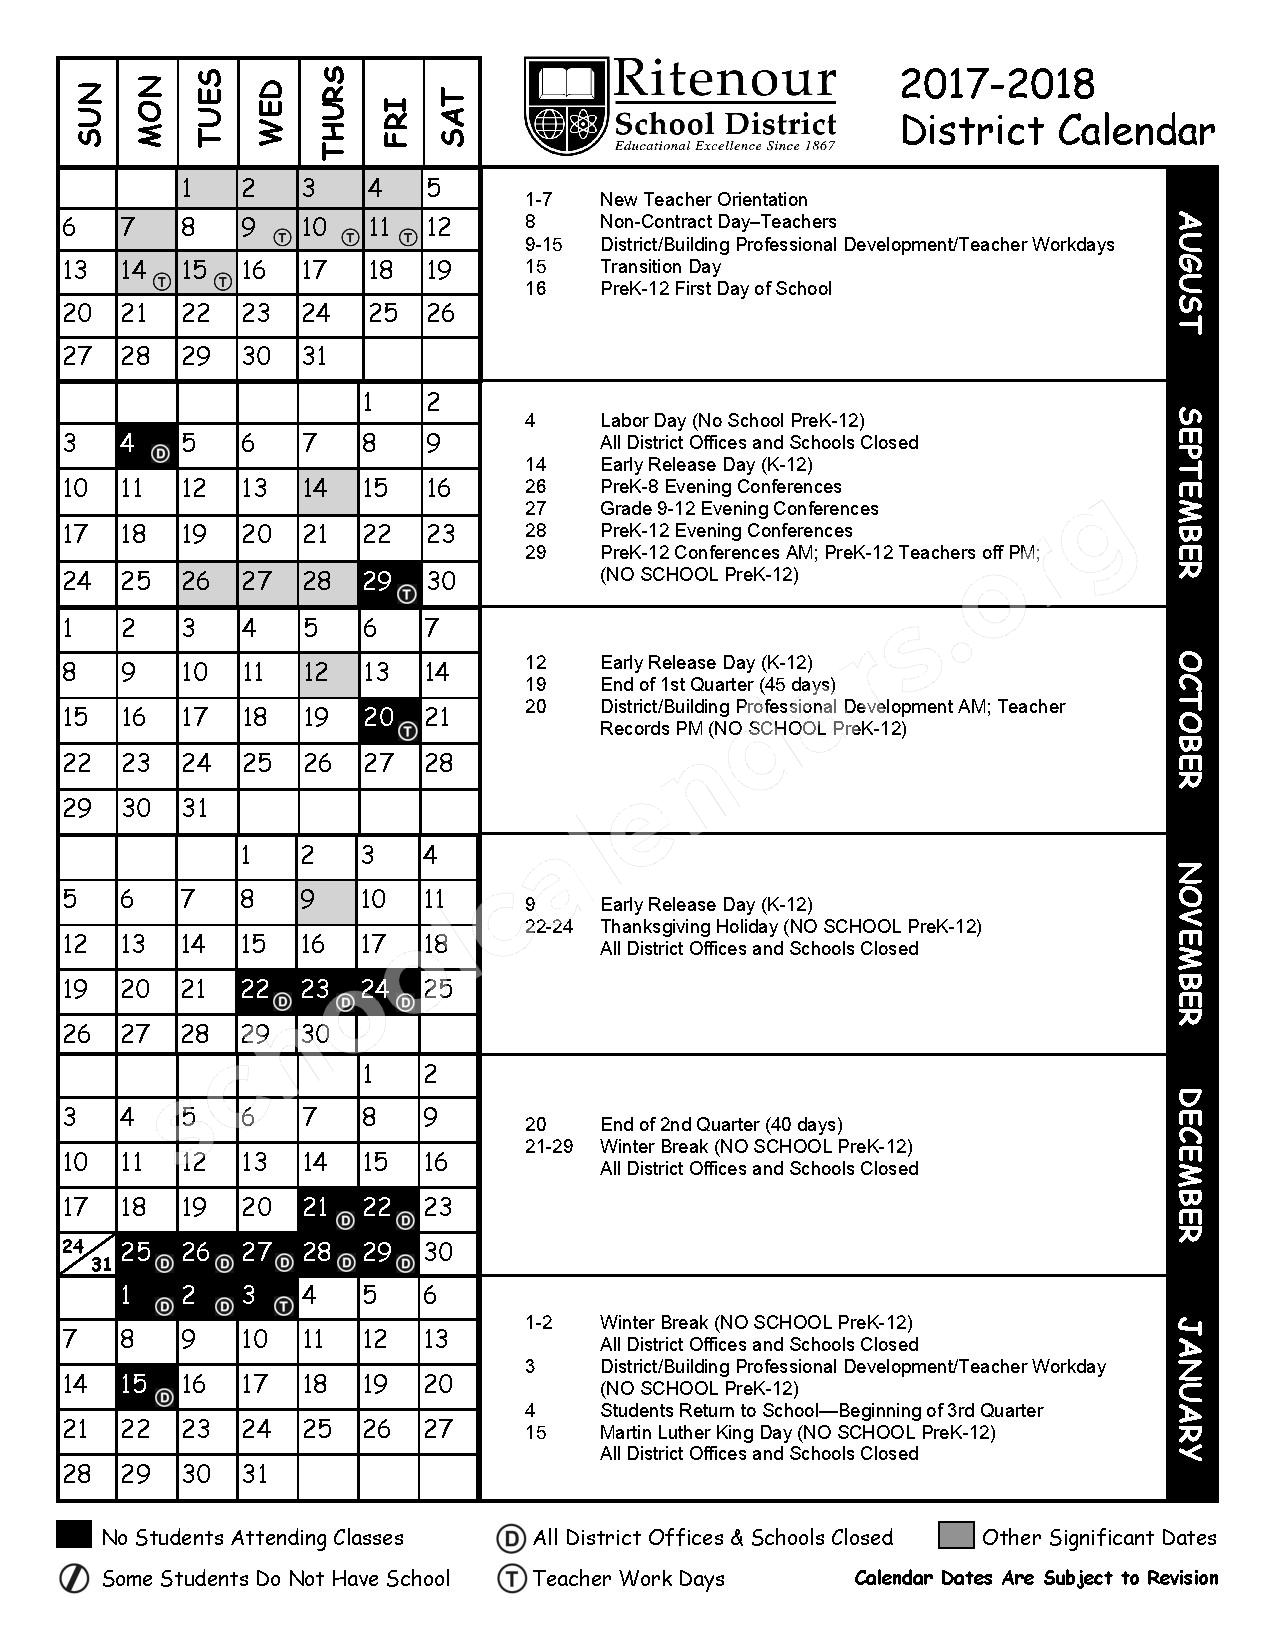 2017 - 2018 District Calendar – Ritenour School District – page 1